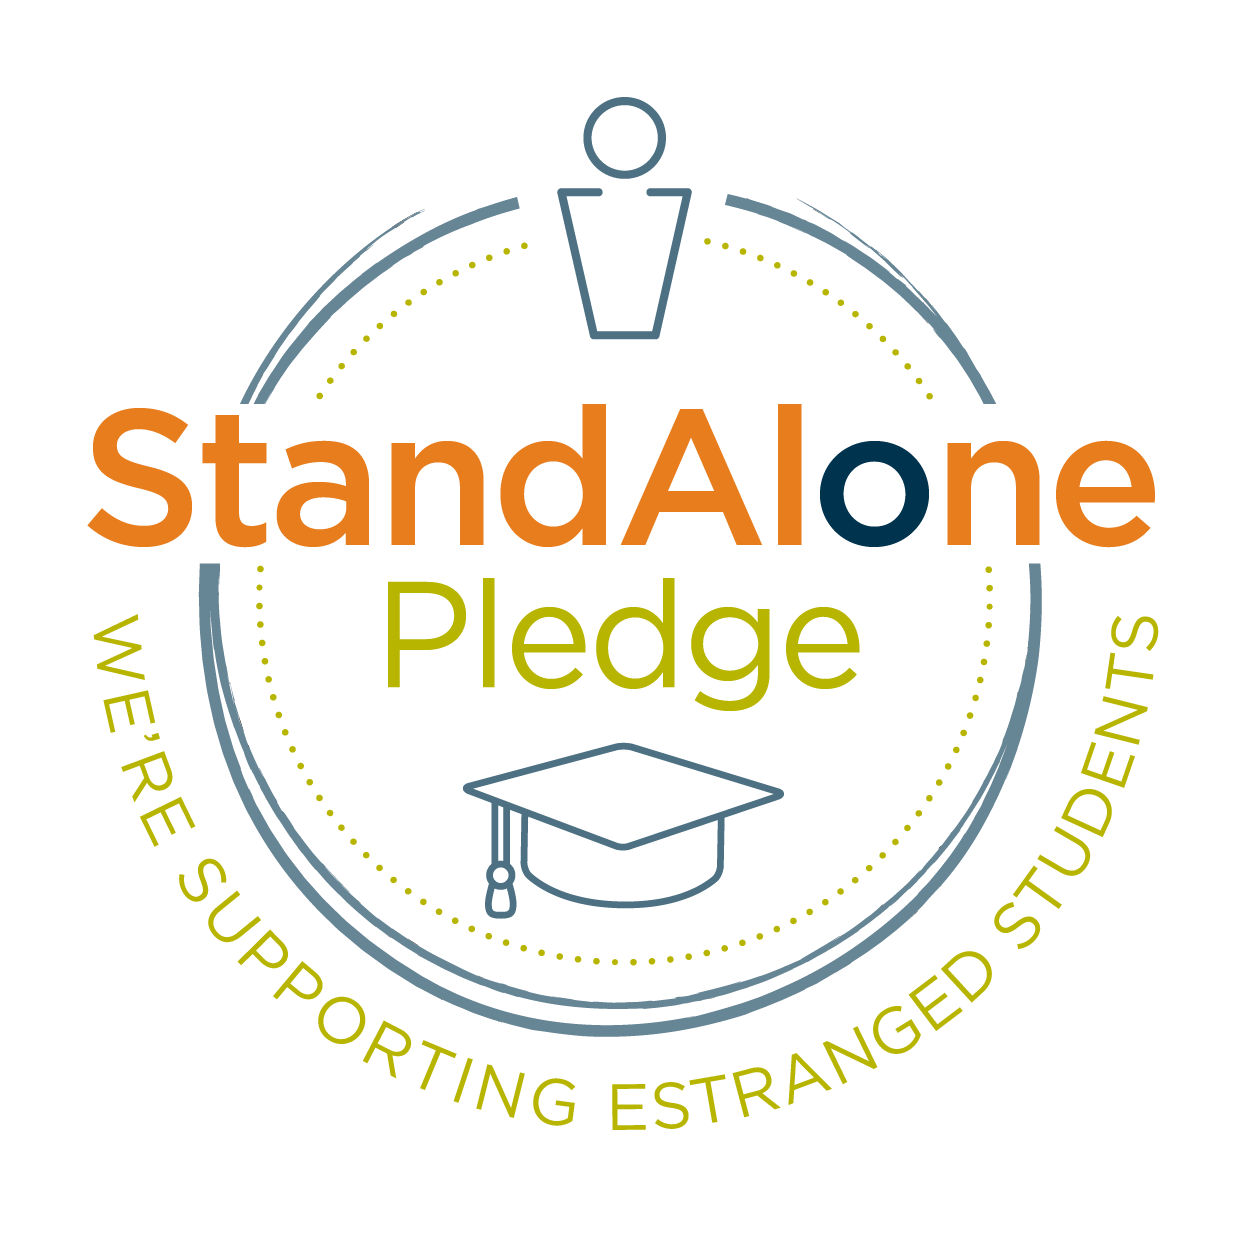 the stand alone pledge helping estranged students to overcome